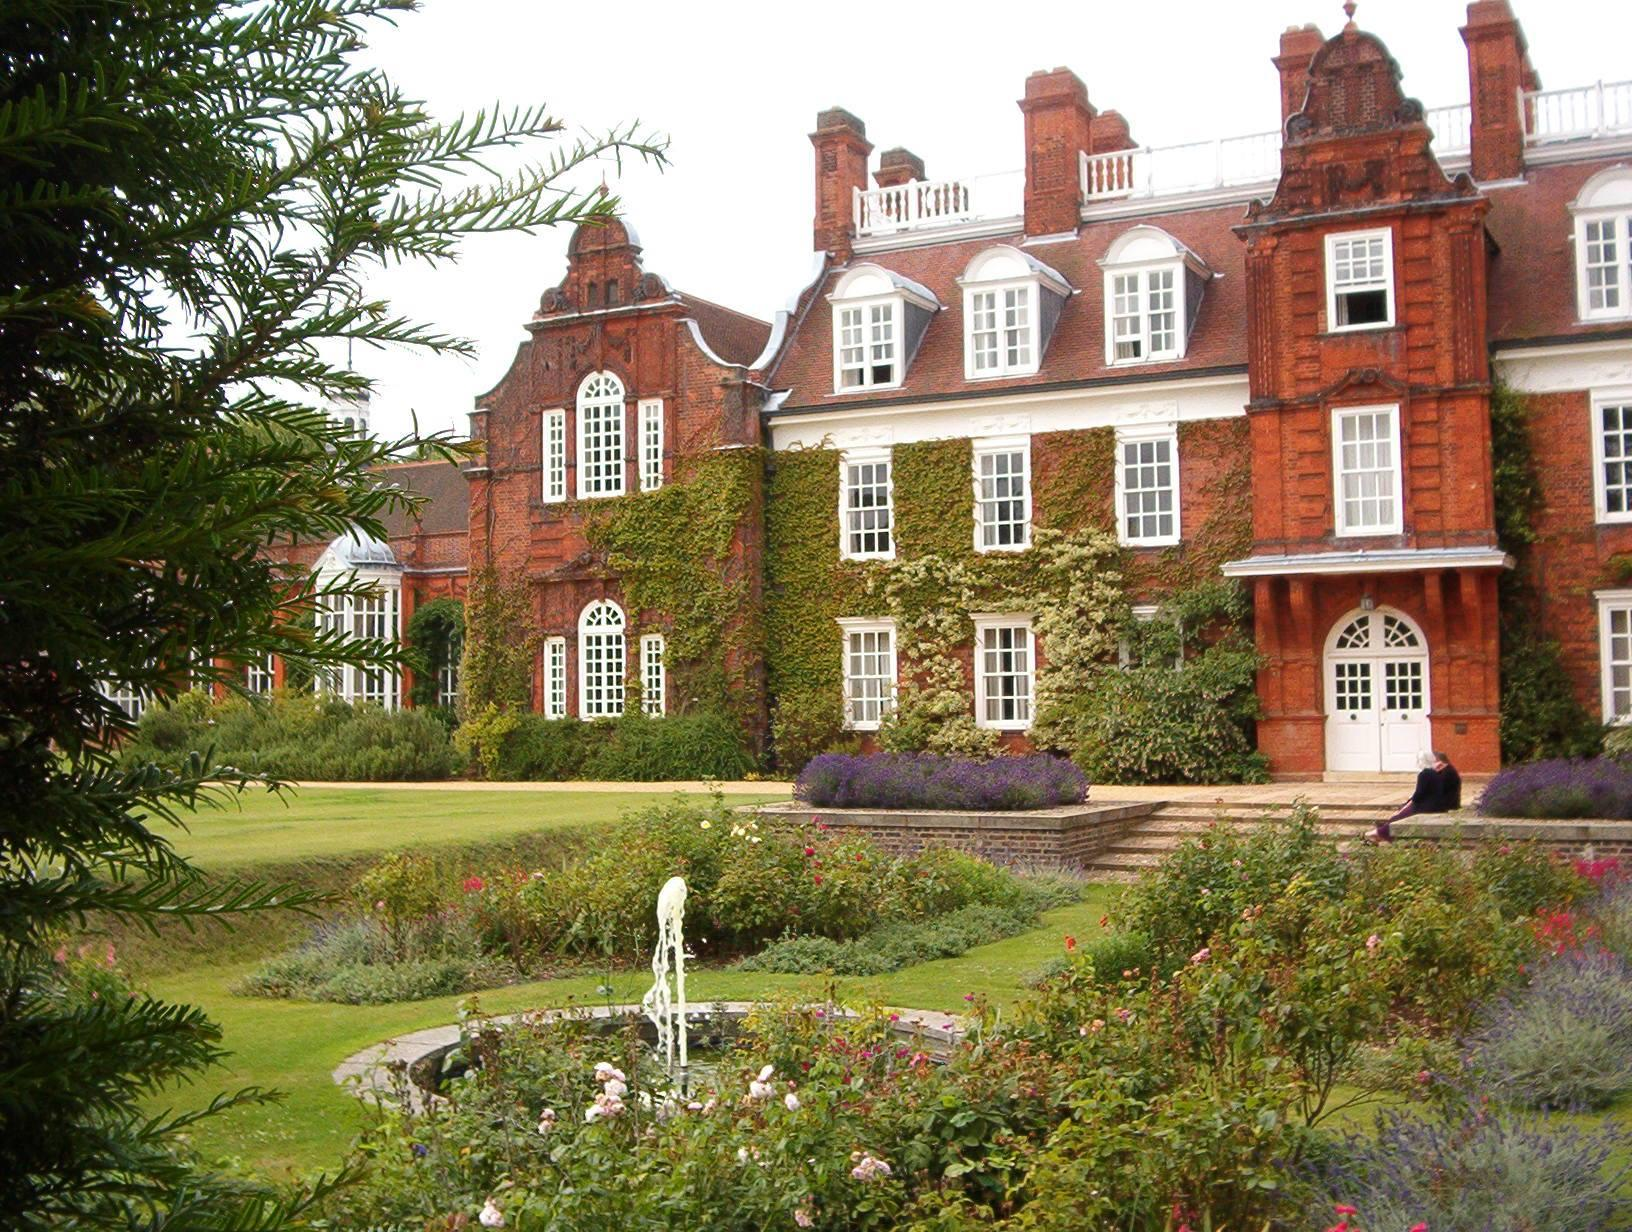 Newnham College, founded in 1871, has yet to adopt such measures